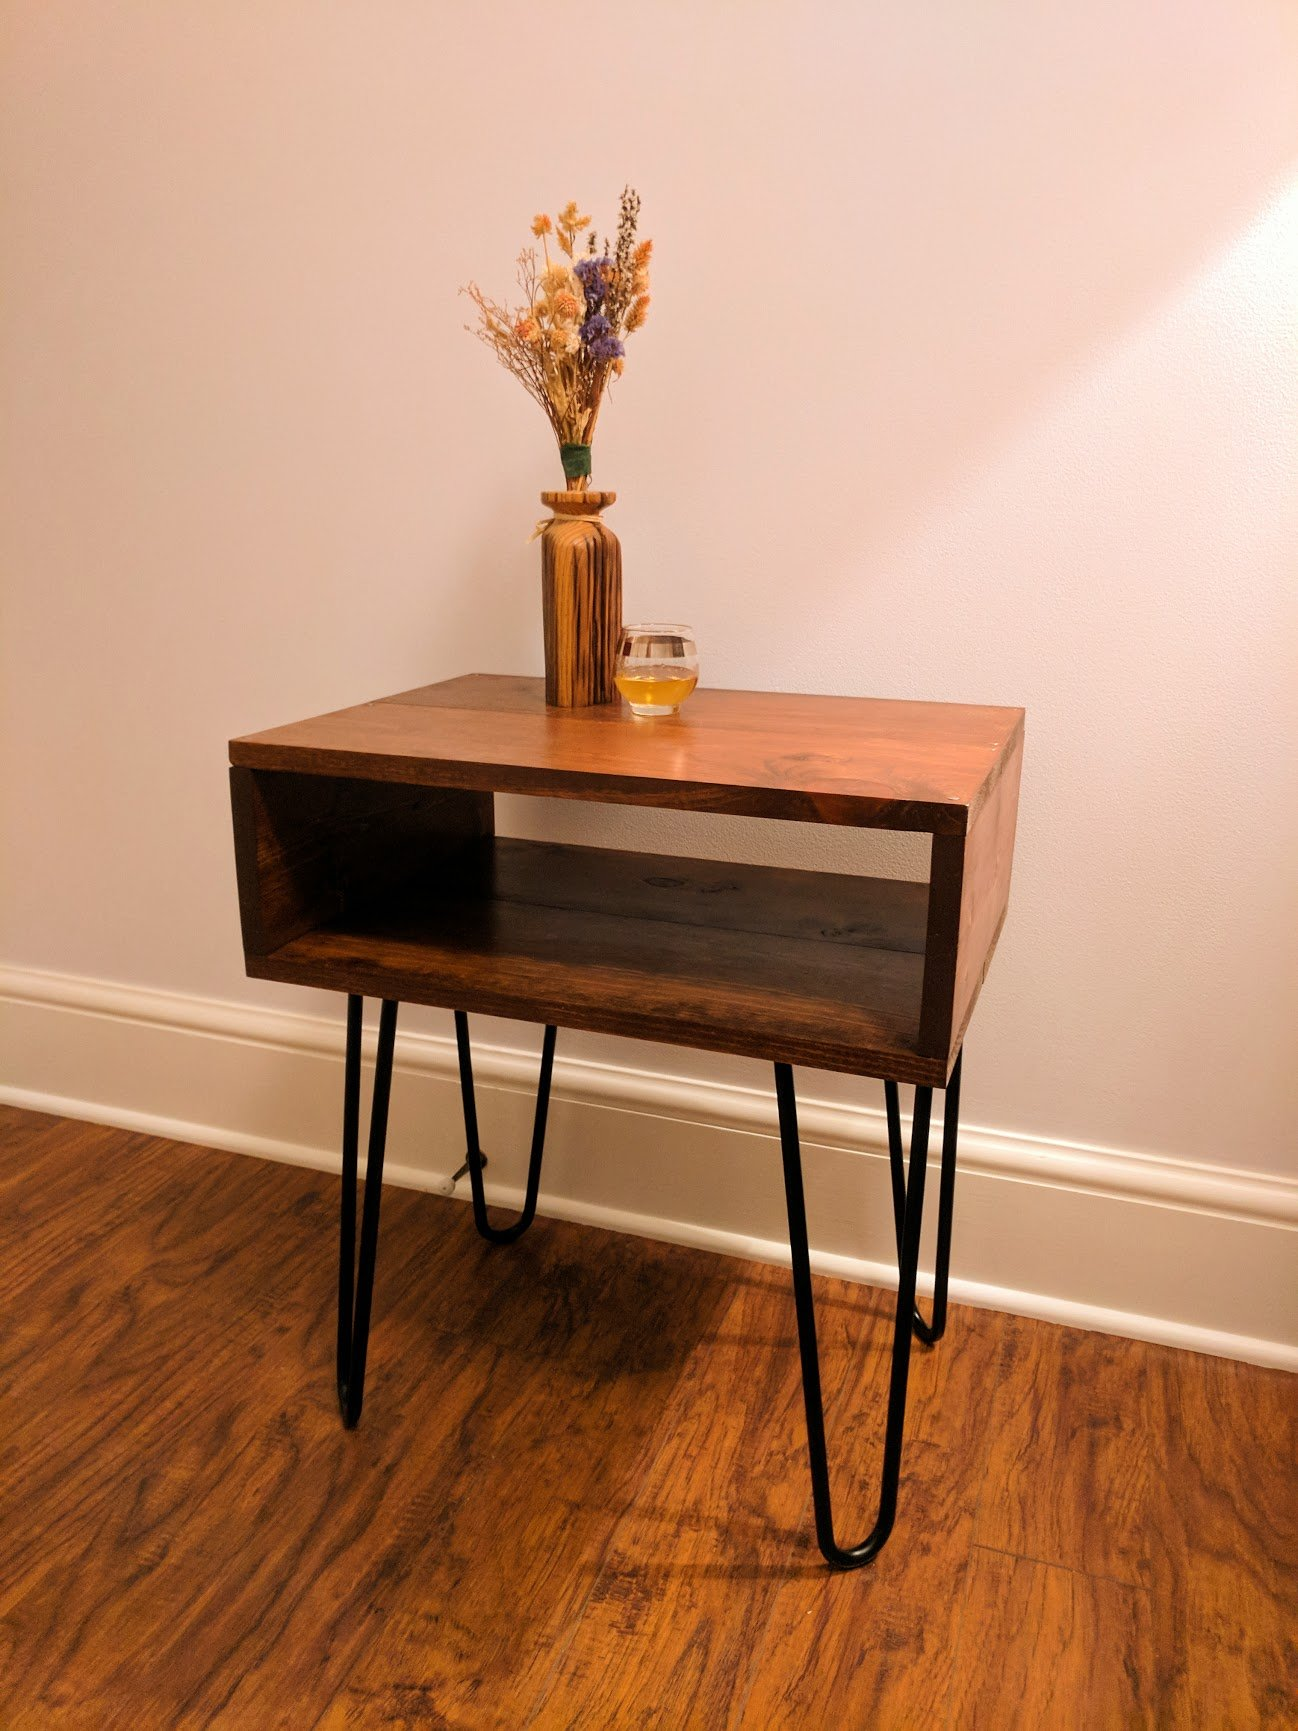 Commissioned stained pine end table with hairpin legs